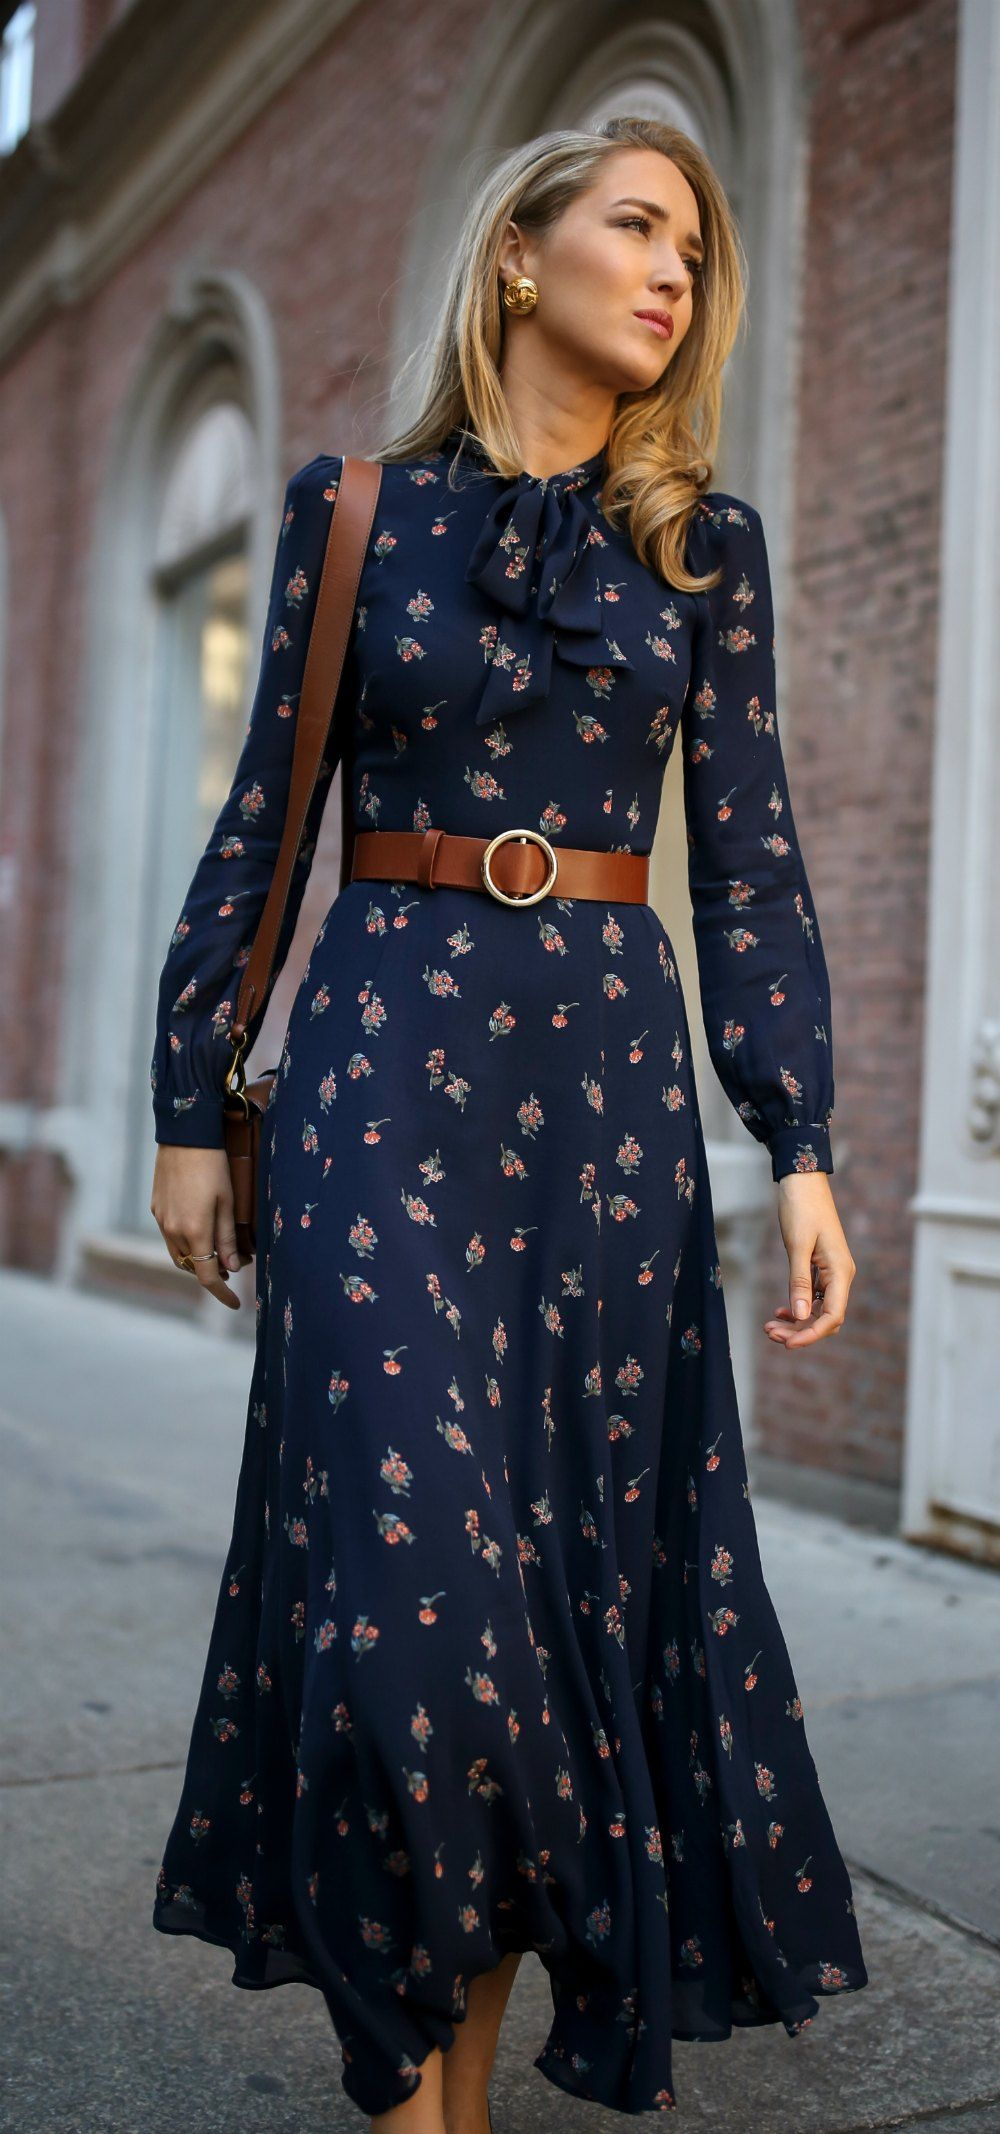 0b8a4197d6 Click for outfit details! Navy floral tie-neck maxi dress with navy ...